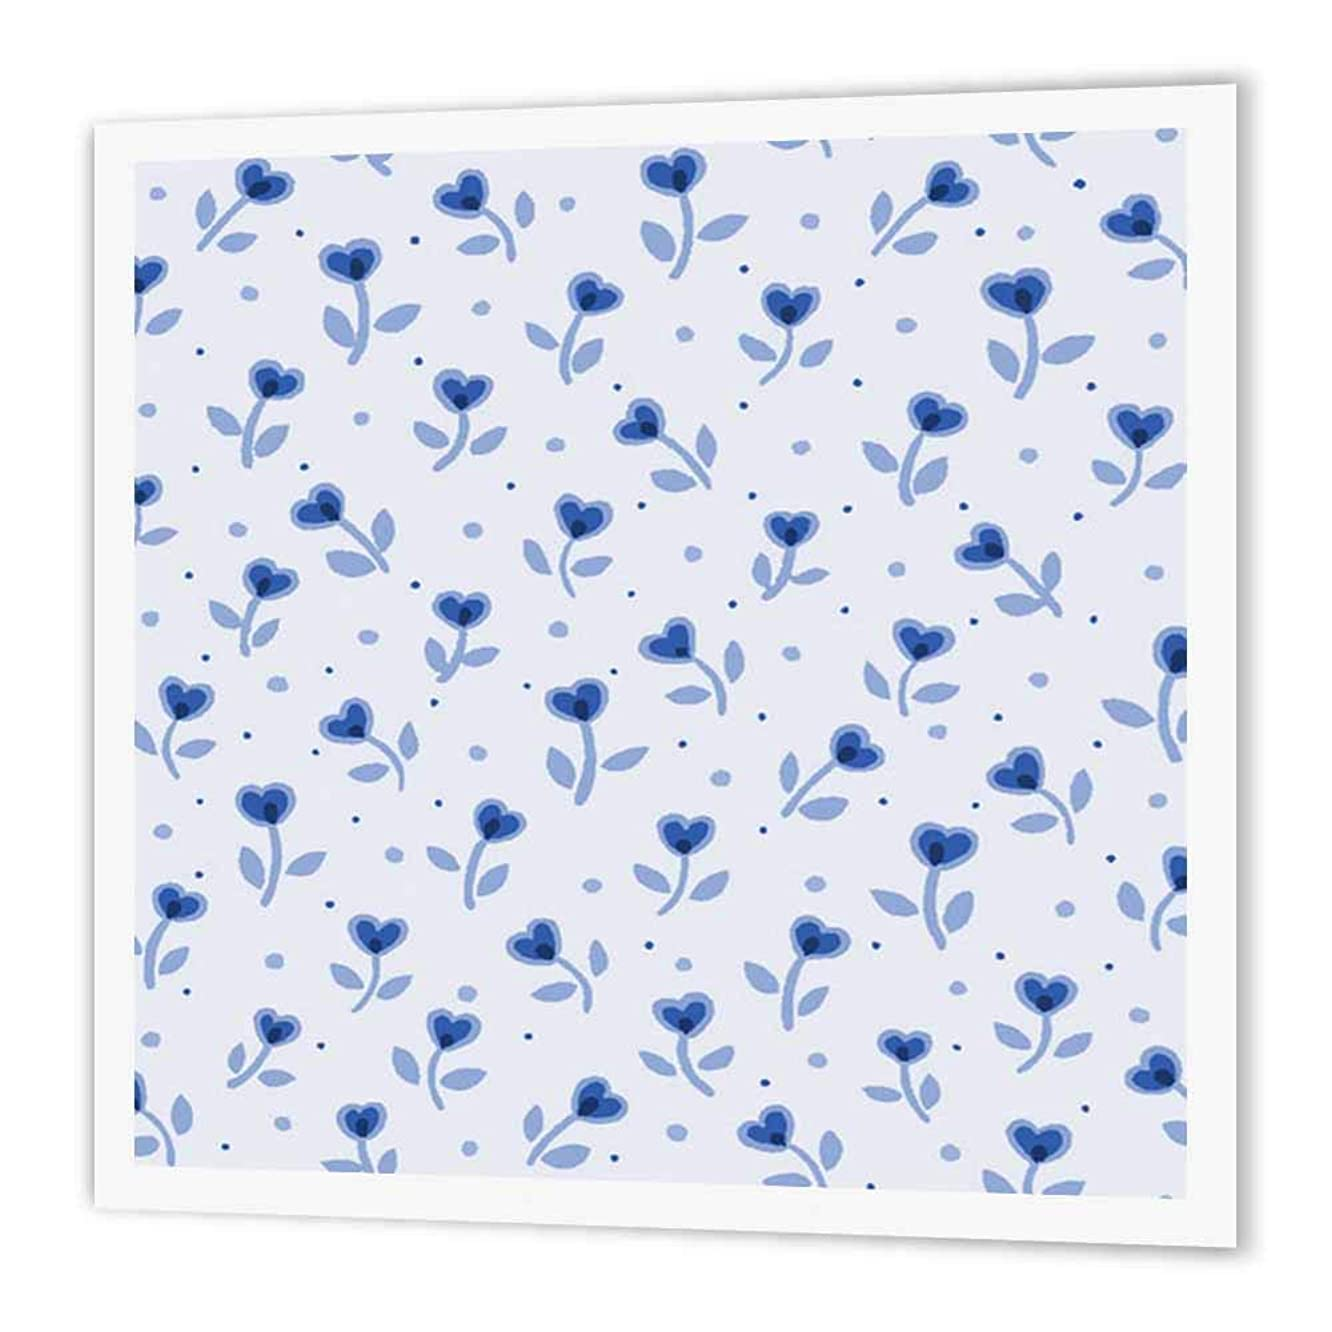 3dRose ht_194792_1 Print of Tiny Blue Shabby Chic Heart Flowers Iron on Heat Transfer Paper for White Material, 8 by 8